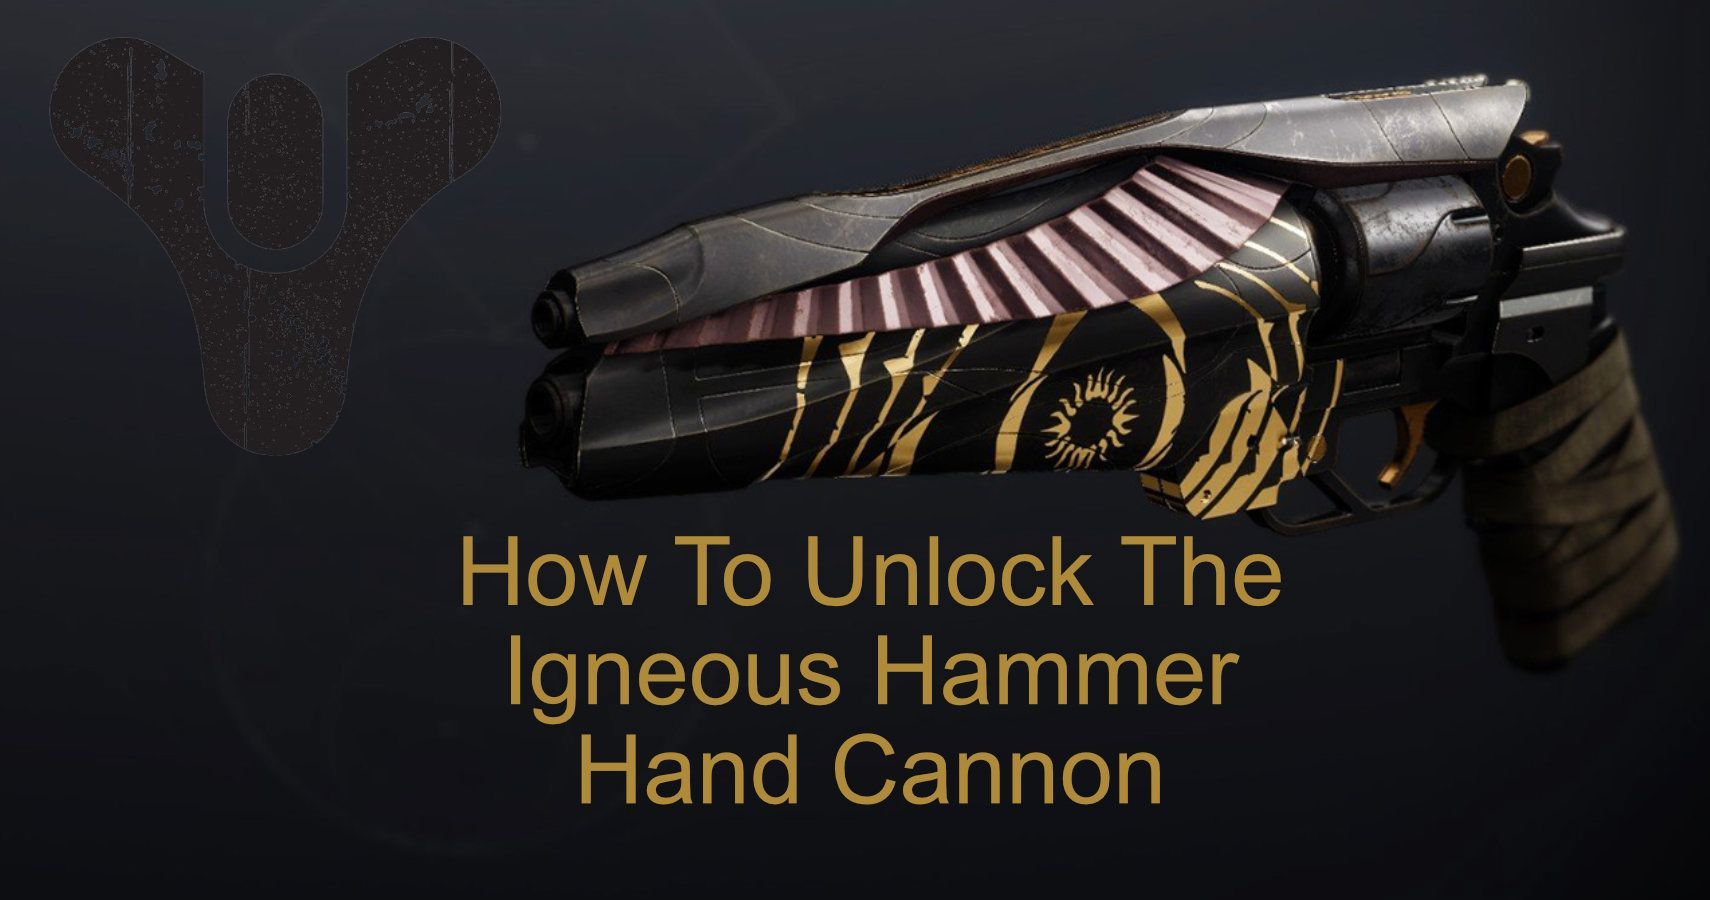 Destiny 2: How To Unlock Igneous Hammer Hand Cannon